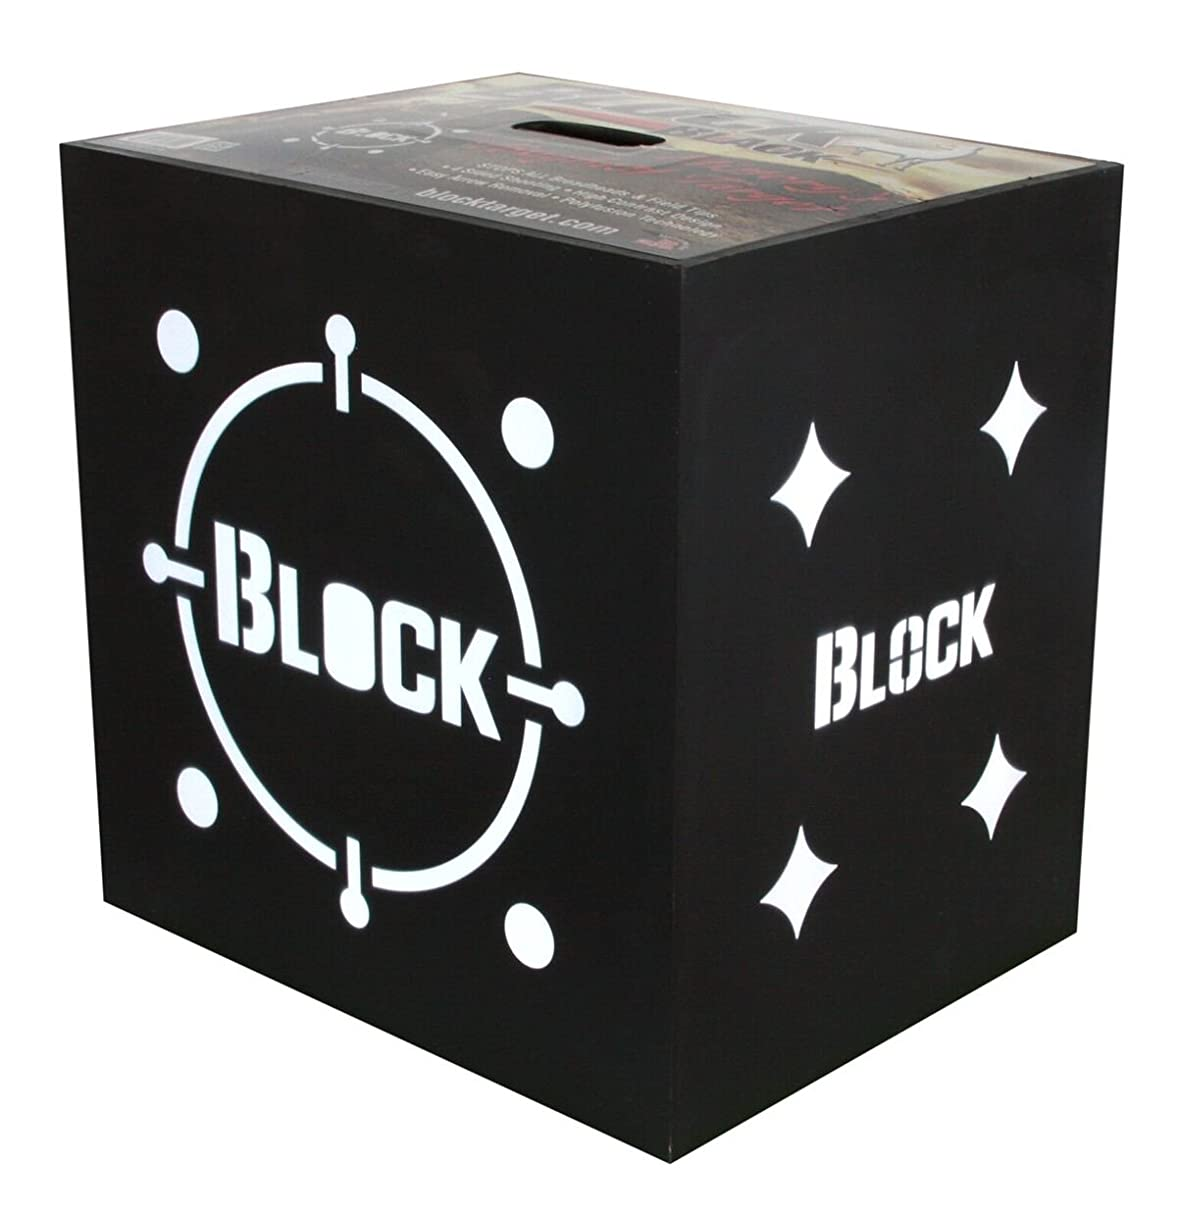 Block Black Crossbow 4-Sided Archery Target - Designed for the Crossbow Archer